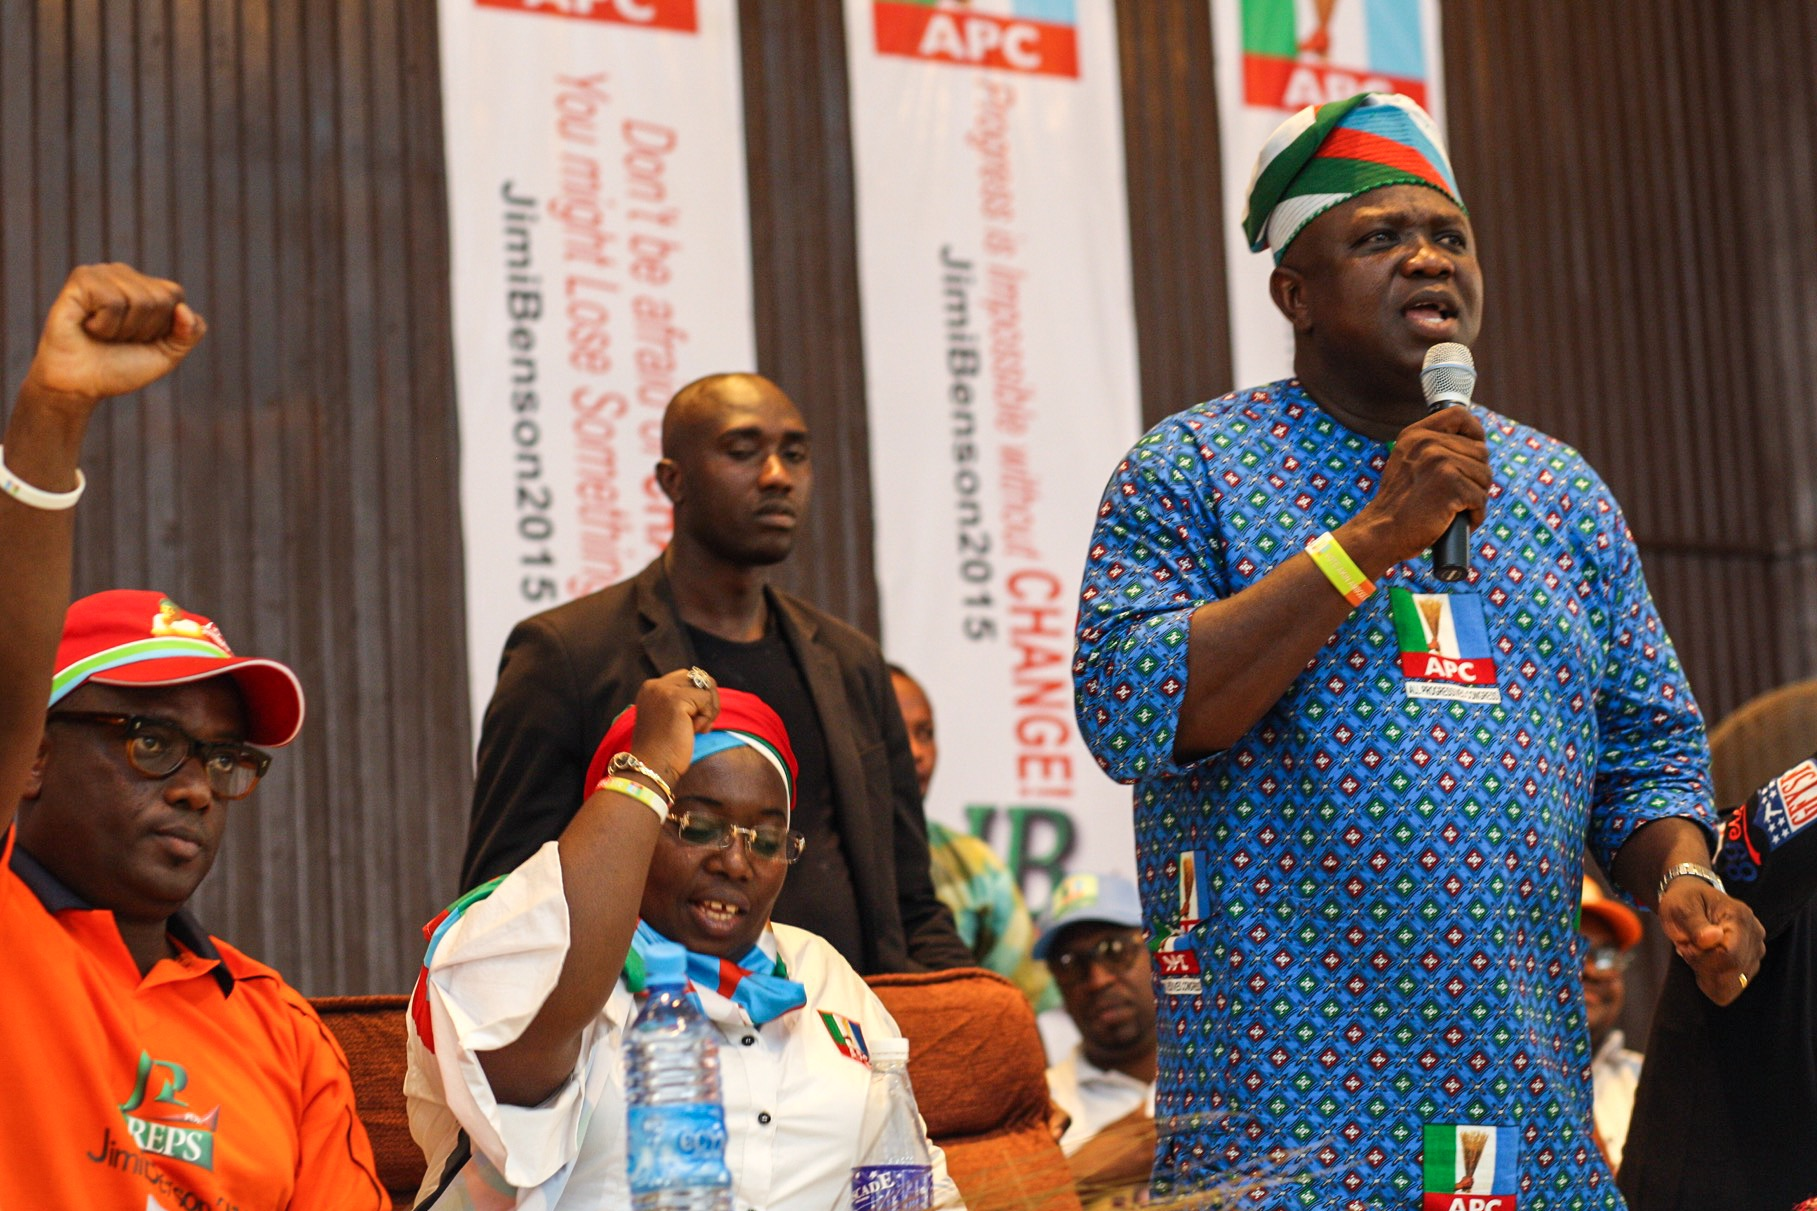 The Youths Will Be Made Prosperous – Ambode